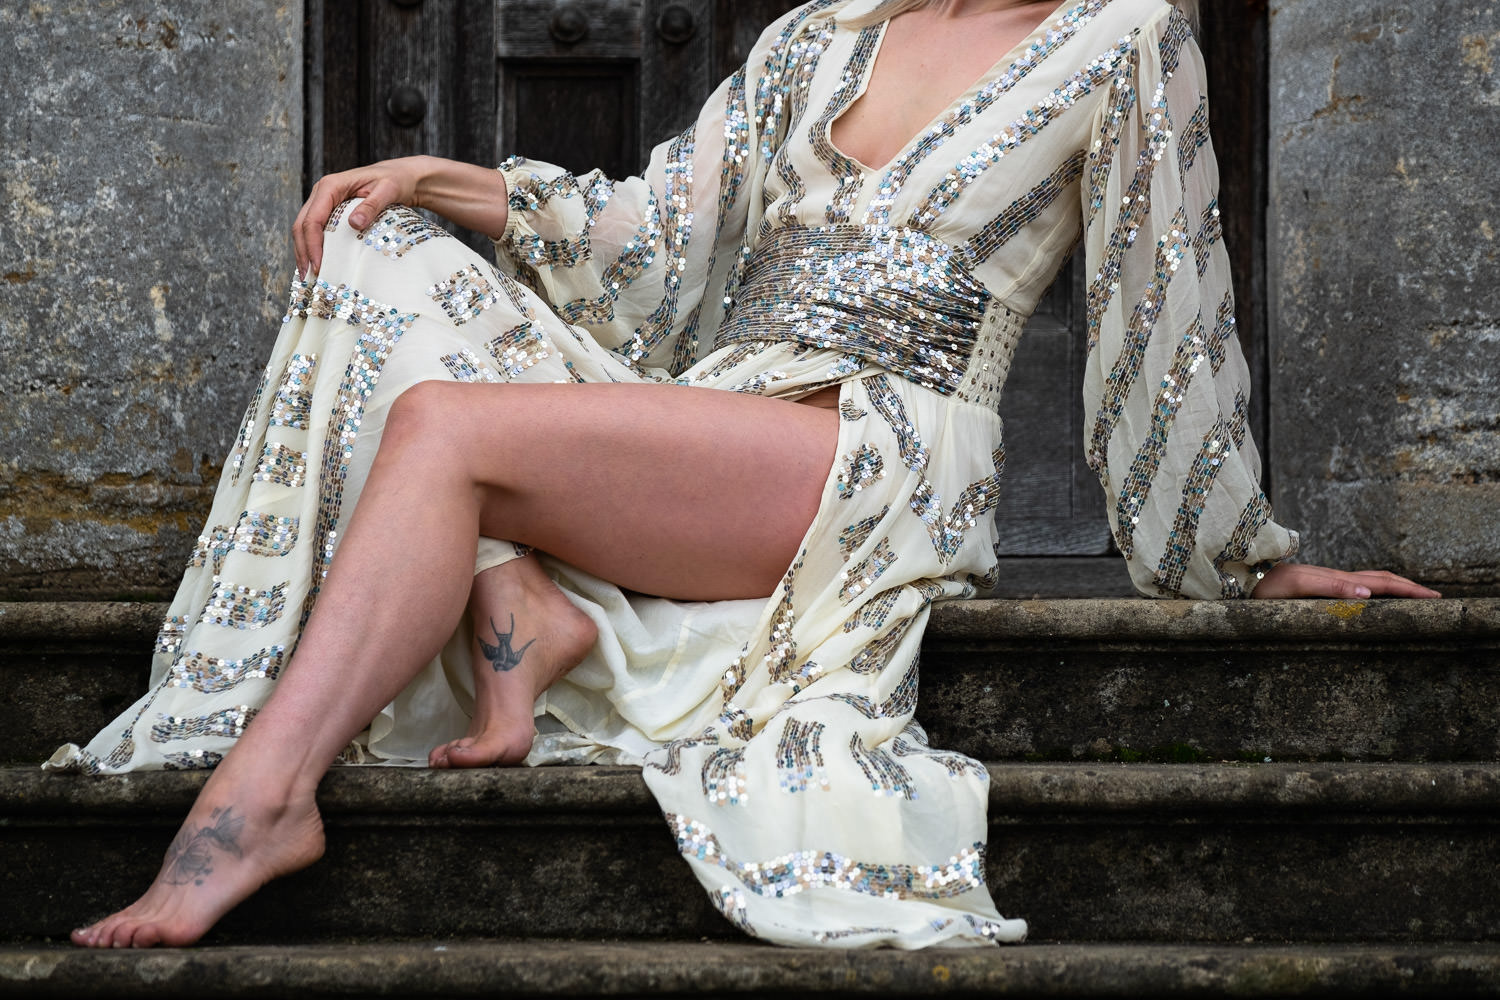 Close up detailed shot of a woman sat on stone steps, wearing a sequined dress.